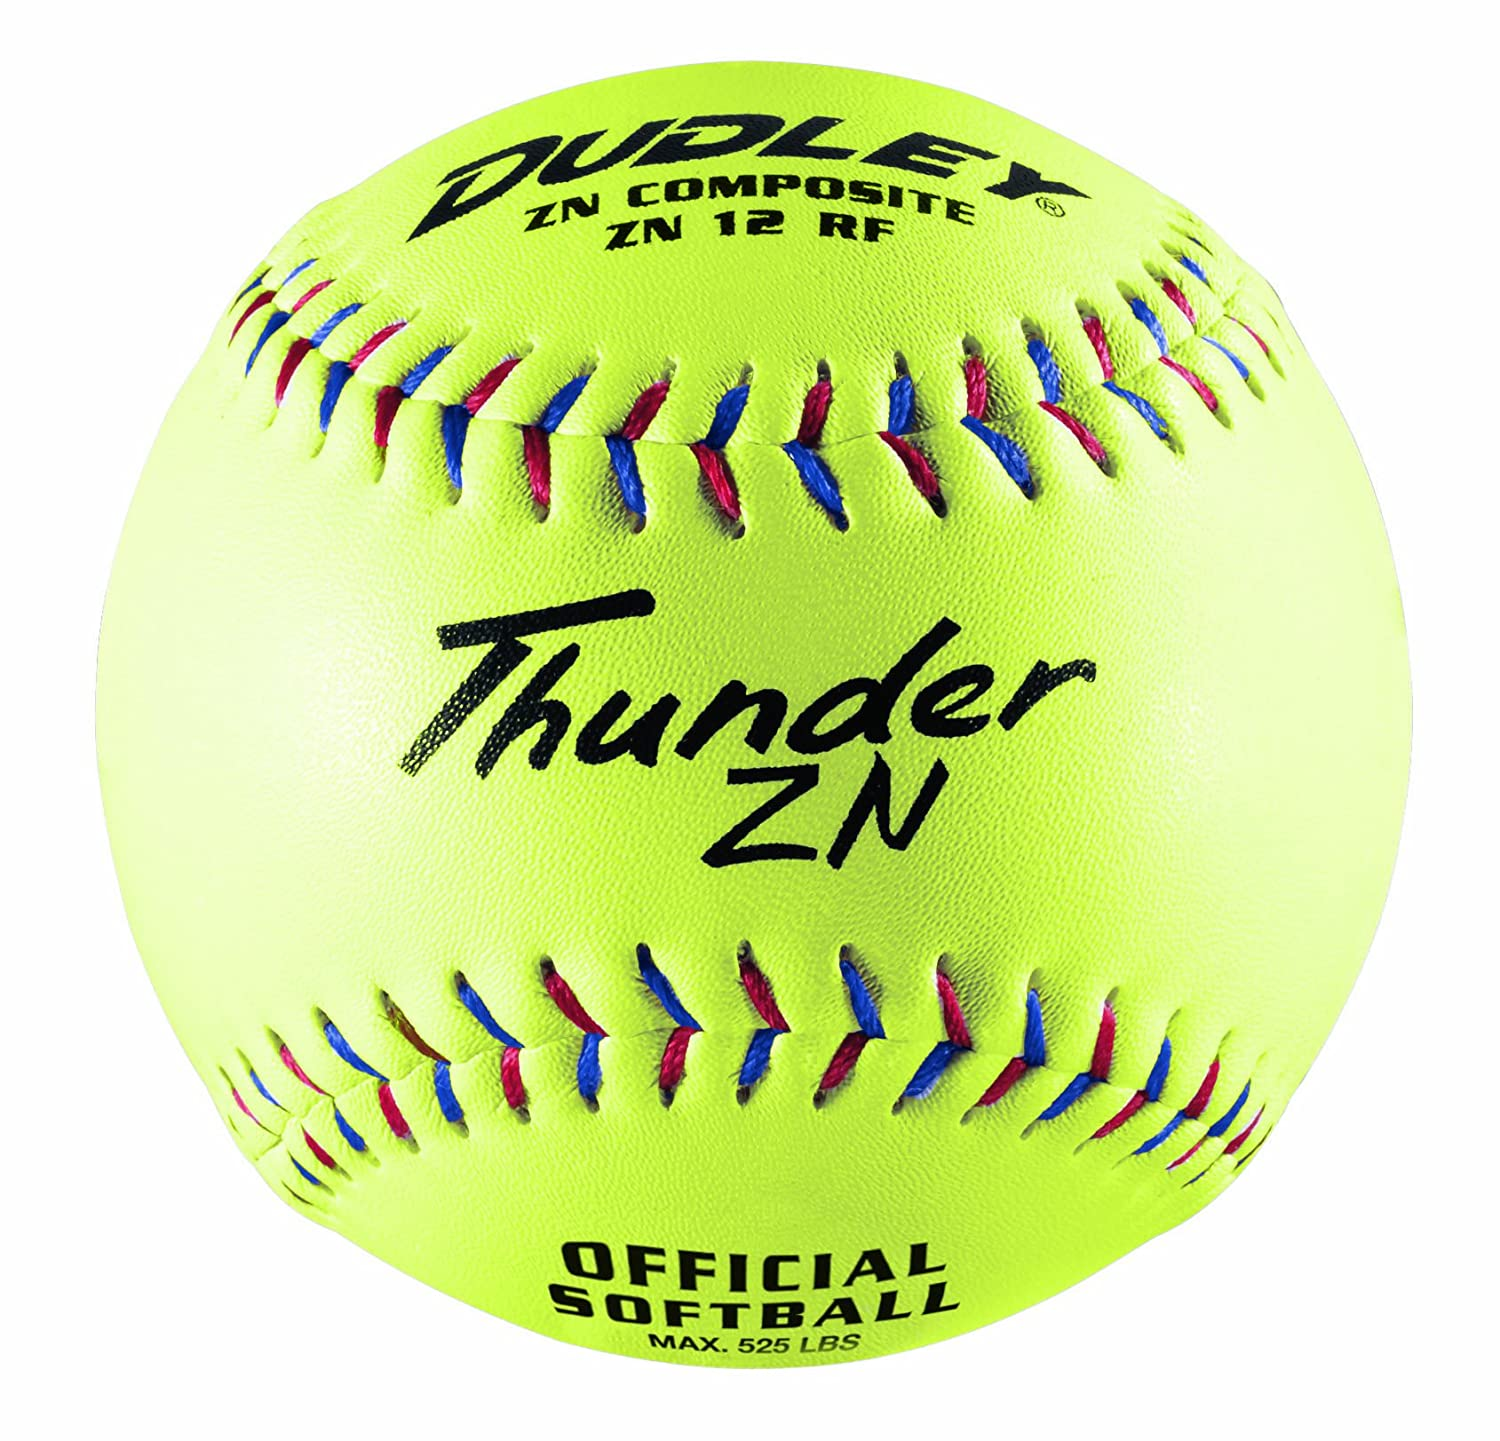 Dudley non-association Thunder Dudley – ZN Slowピッチ合成ソフトボール – non-association ダース B003DYL9LE, Epoca select shop:f1463d1b --- sayselfiee.com